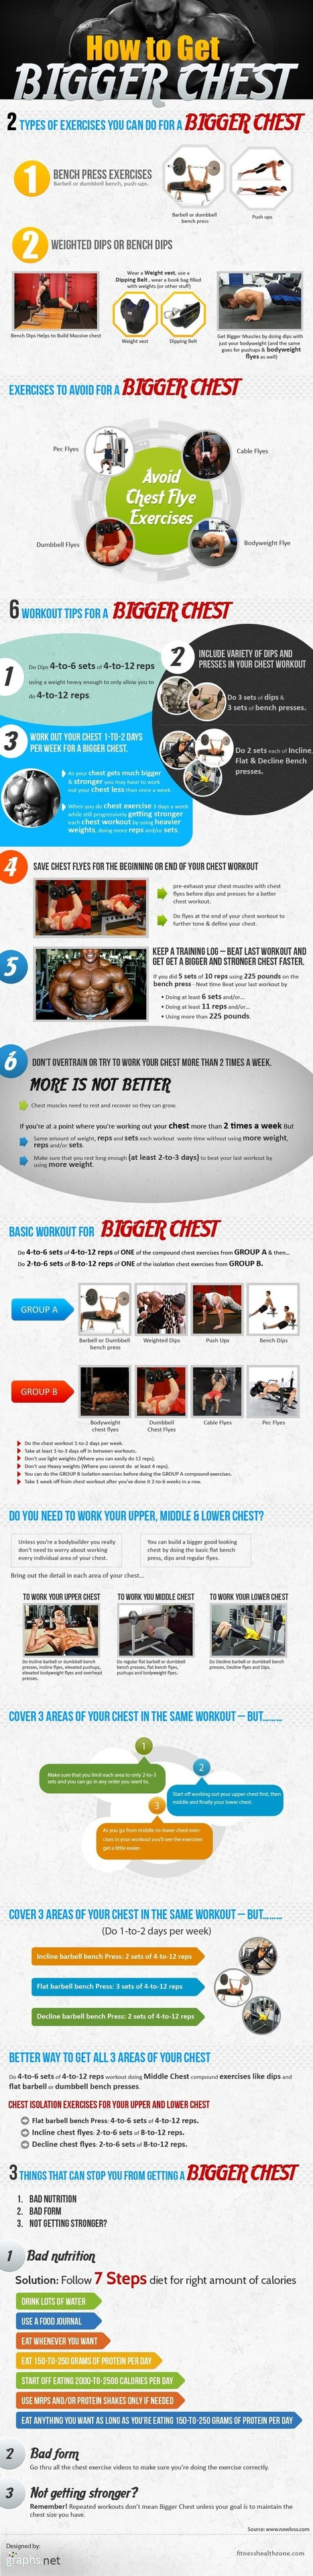 Fitness Guide - 6 Ways to Get bigger chest | All Infographics | All Infographics | Scoop.it